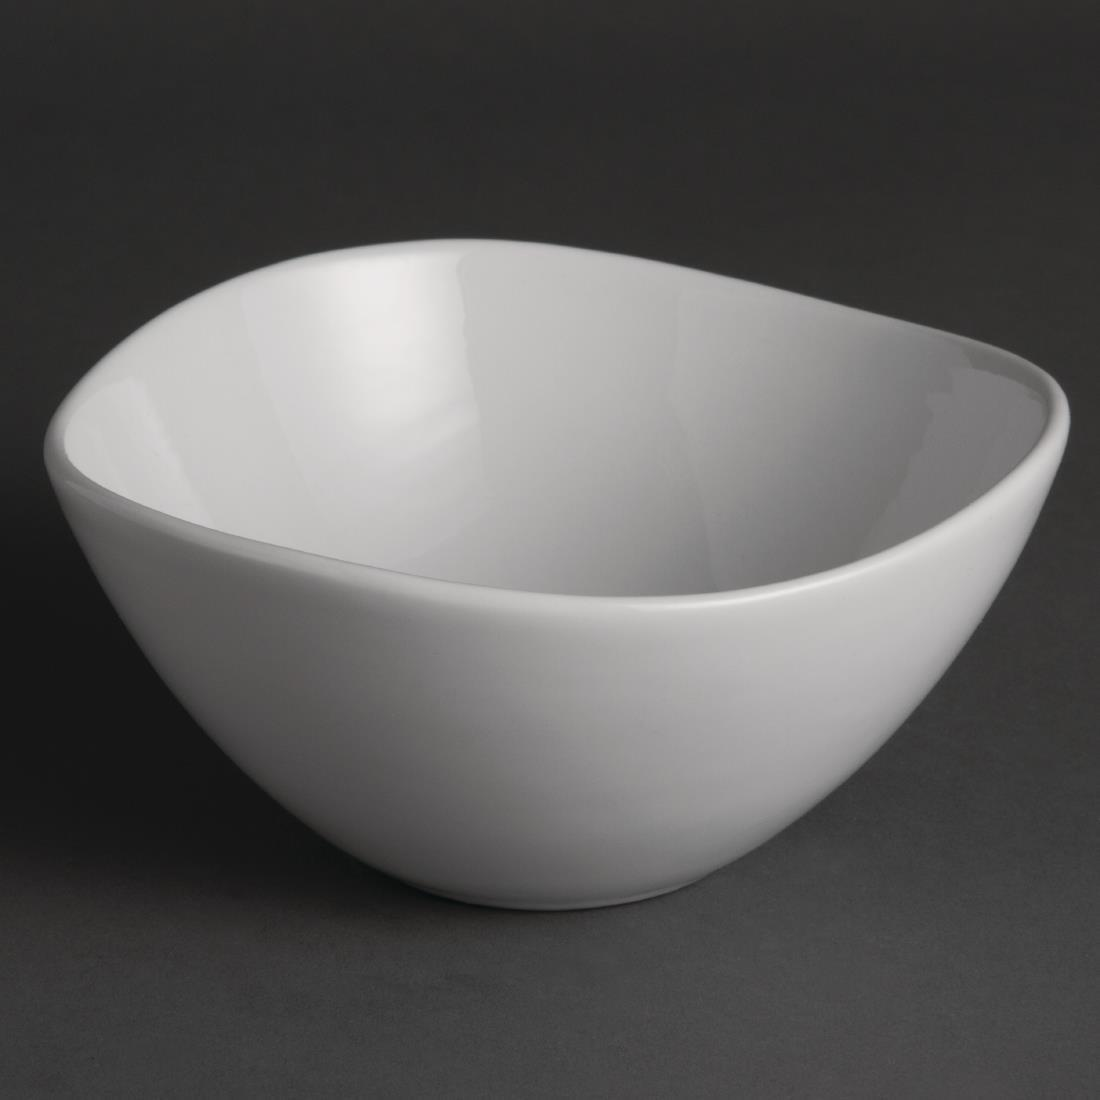 Olympia Whiteware Wavy Bowls 150mm